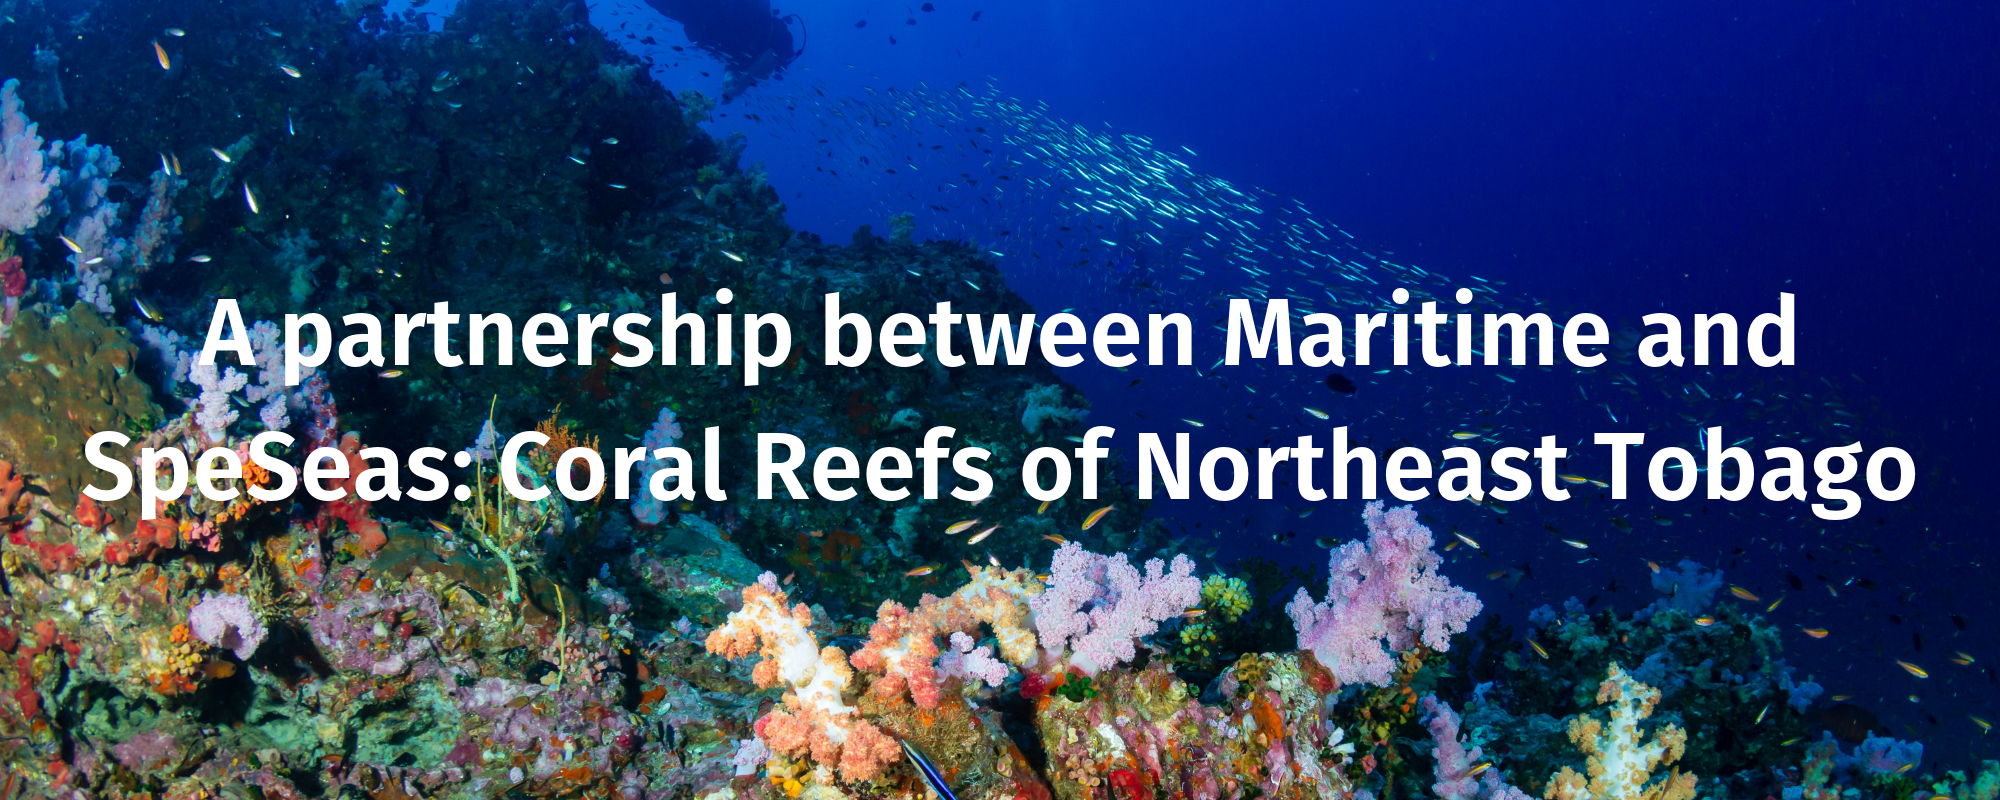 A partnership between Maritime and SpeSeas:  Coral Reefs of Northeast Tobago.